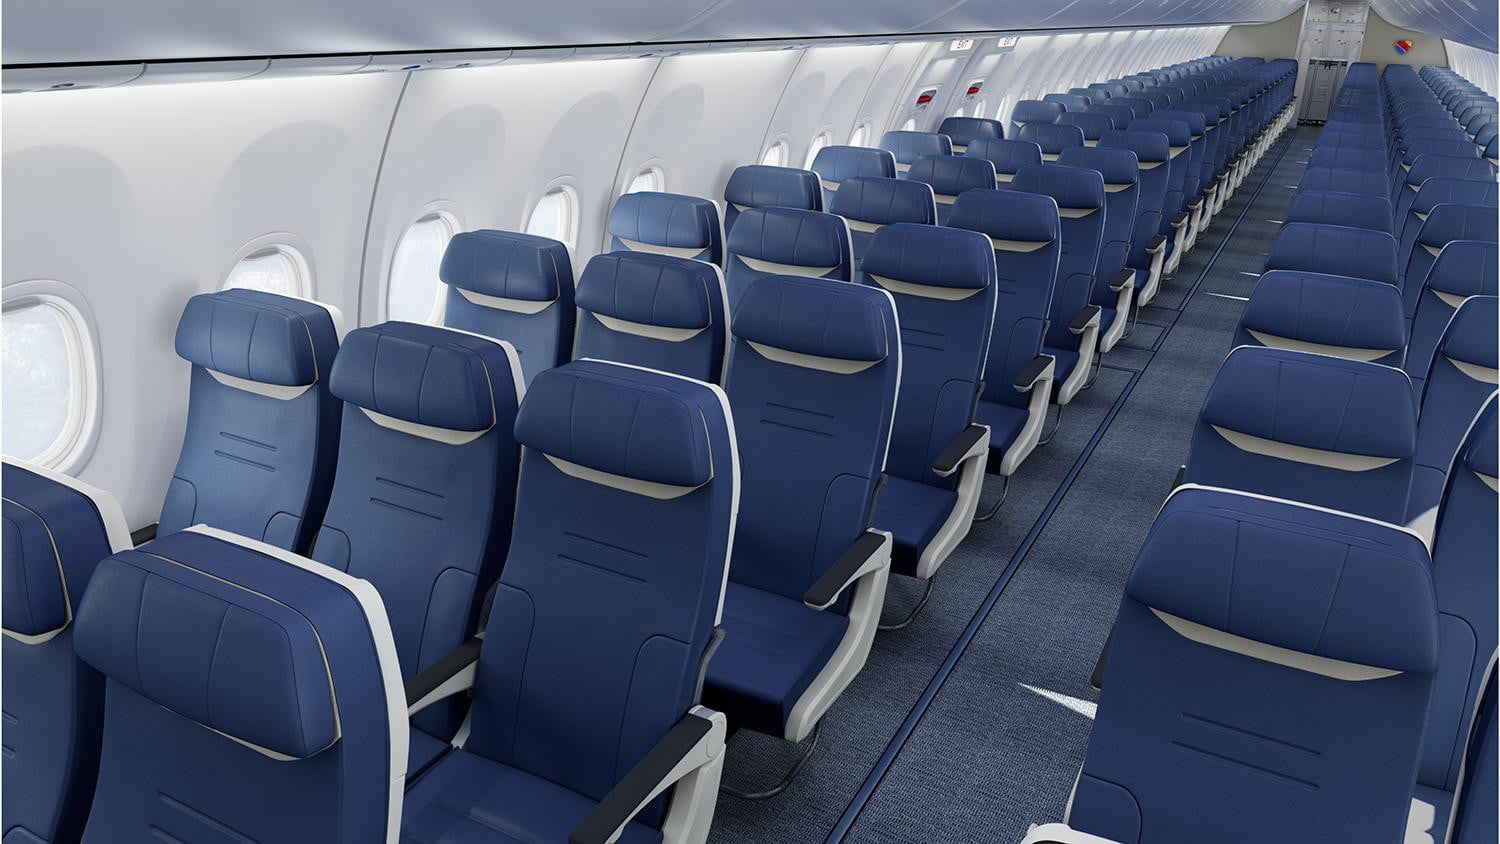 Average Couch Width New Smaller Coach Seat Designs For Planes Digital Trends